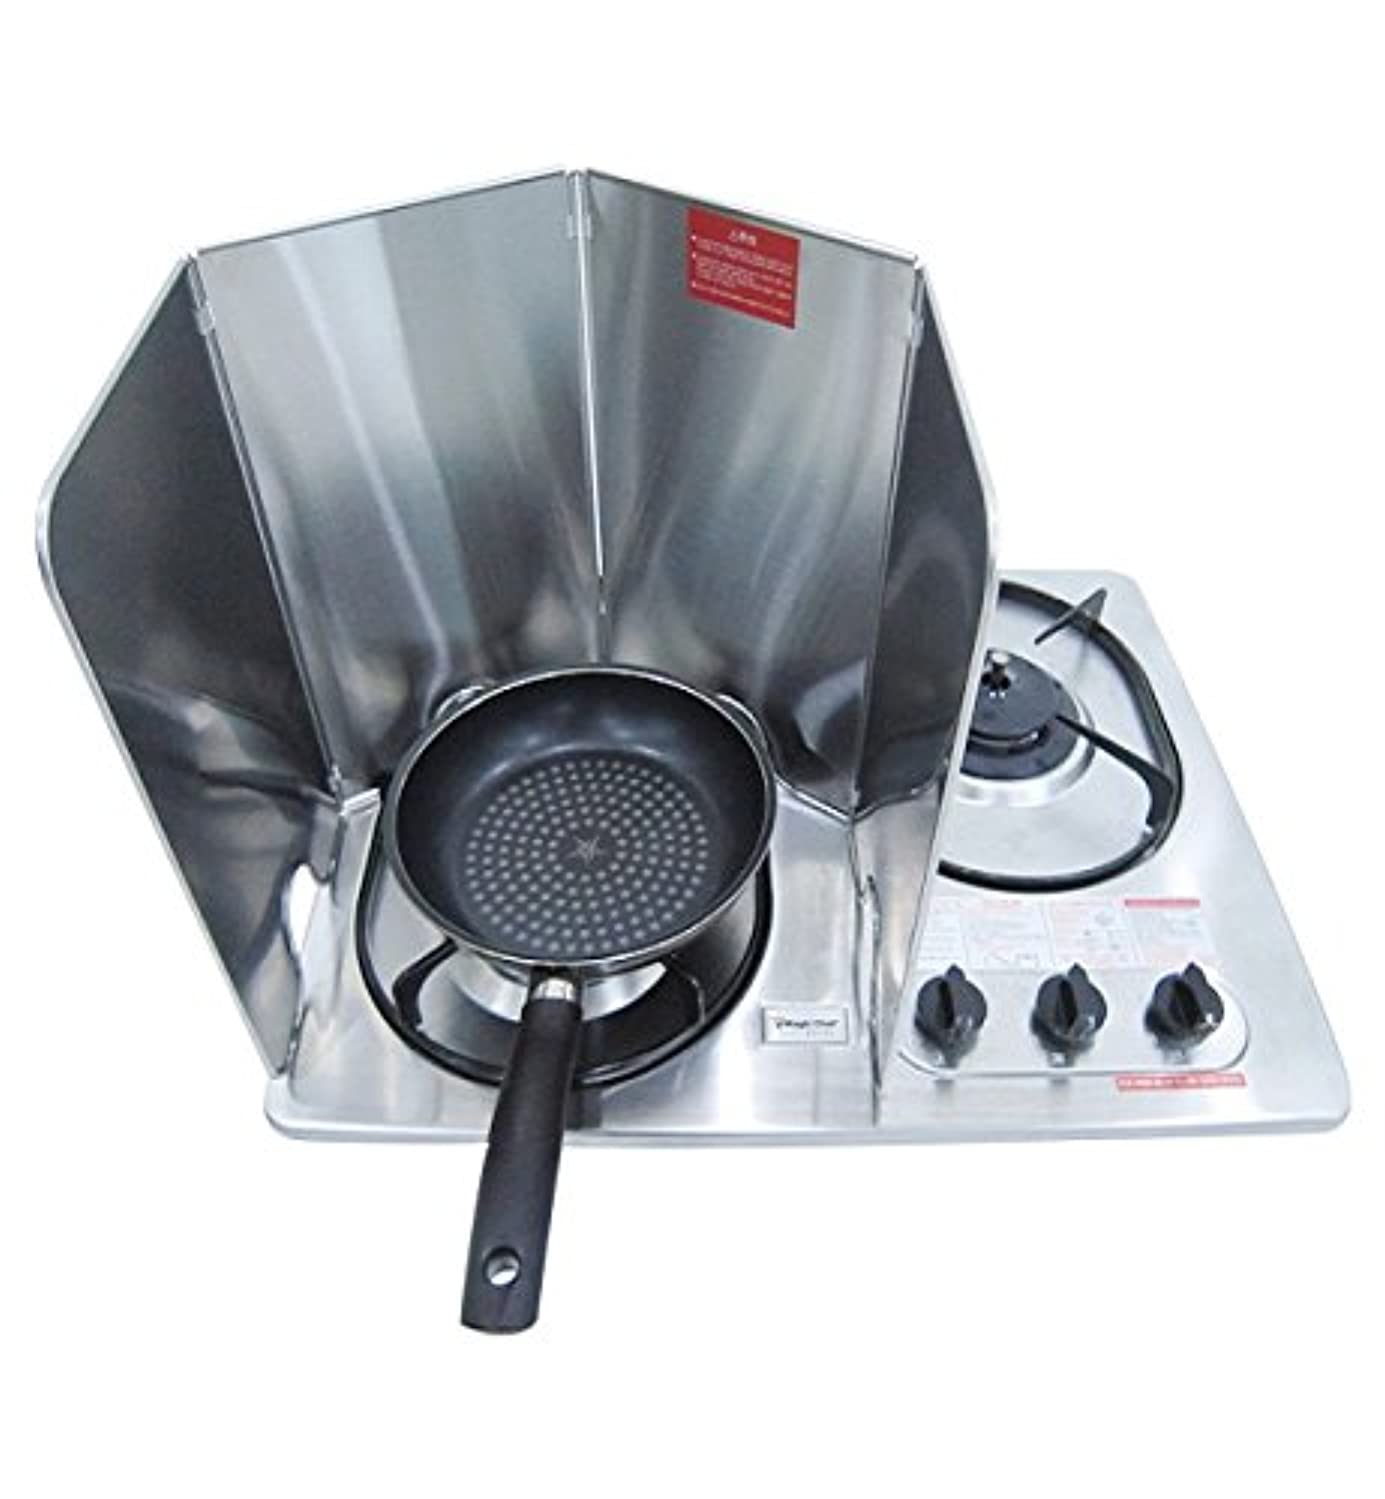 BLUE HOME Splatter Guard for Cooking - Grease Splatter Screen - 4 Sided Splatter Guard Compact Type - Stainless Steel - Unfold 29.33 in x 13 in - Fold 7.28 in x 13 in x 0.86 in